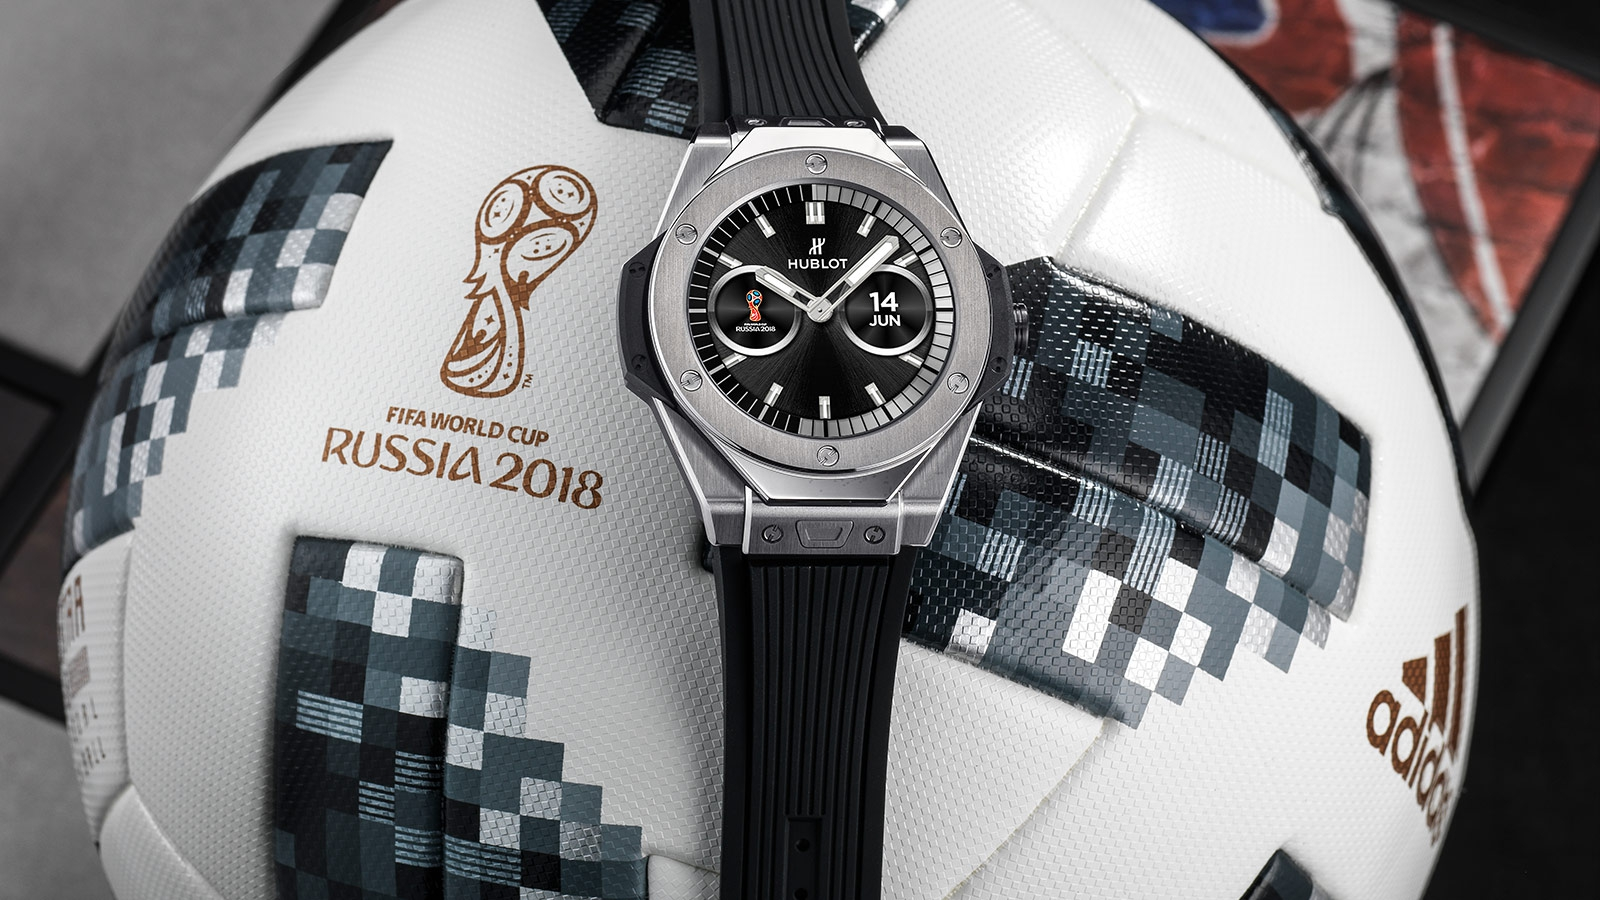 http://luxshopping.vn/Uploads/UserFiles/images/big-bang-referee-2018-fifa-world-cup-2.jpg